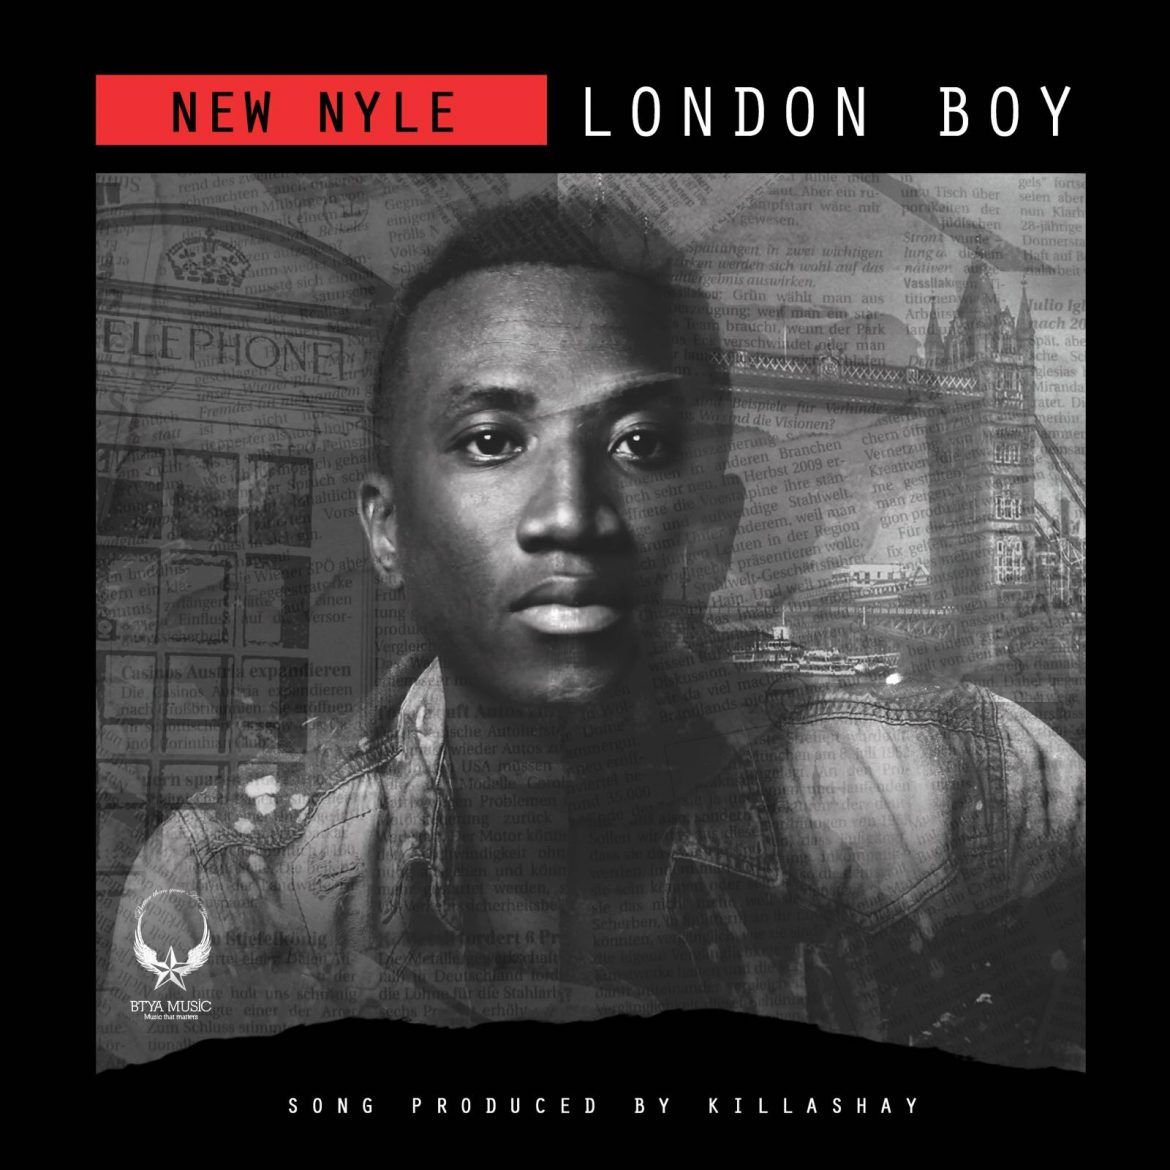 New Nyle - London Boy